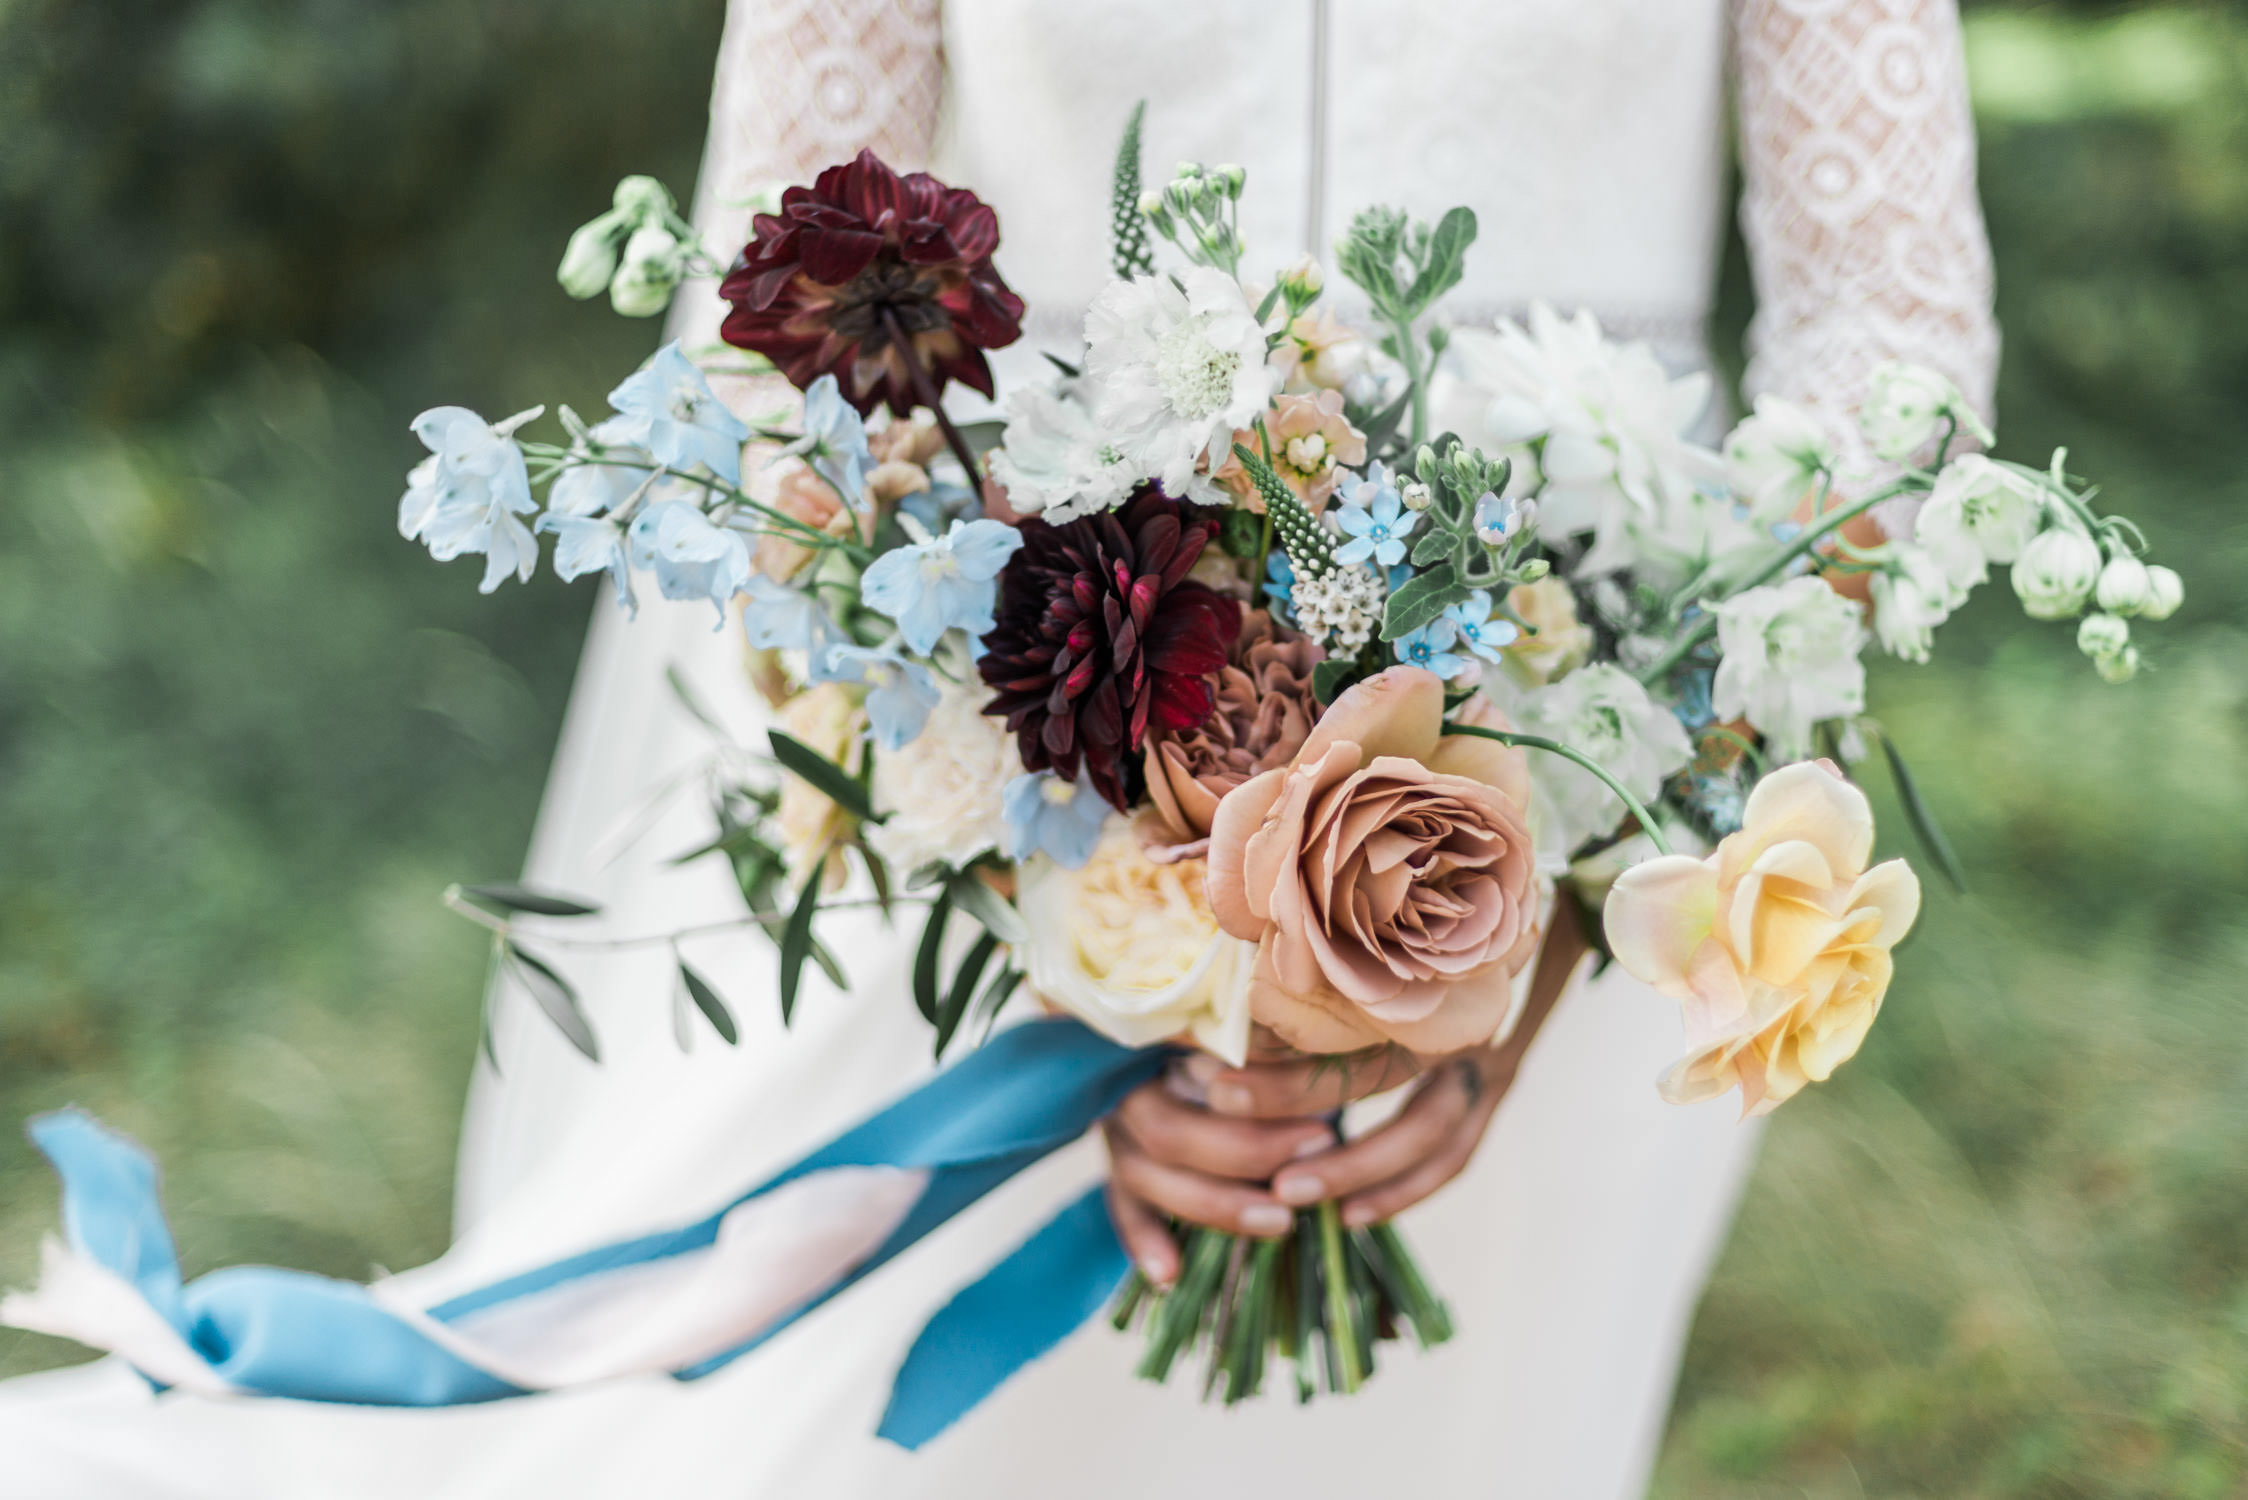 Gorgeous organically styled wedding bouquet by Edenique Floral Design